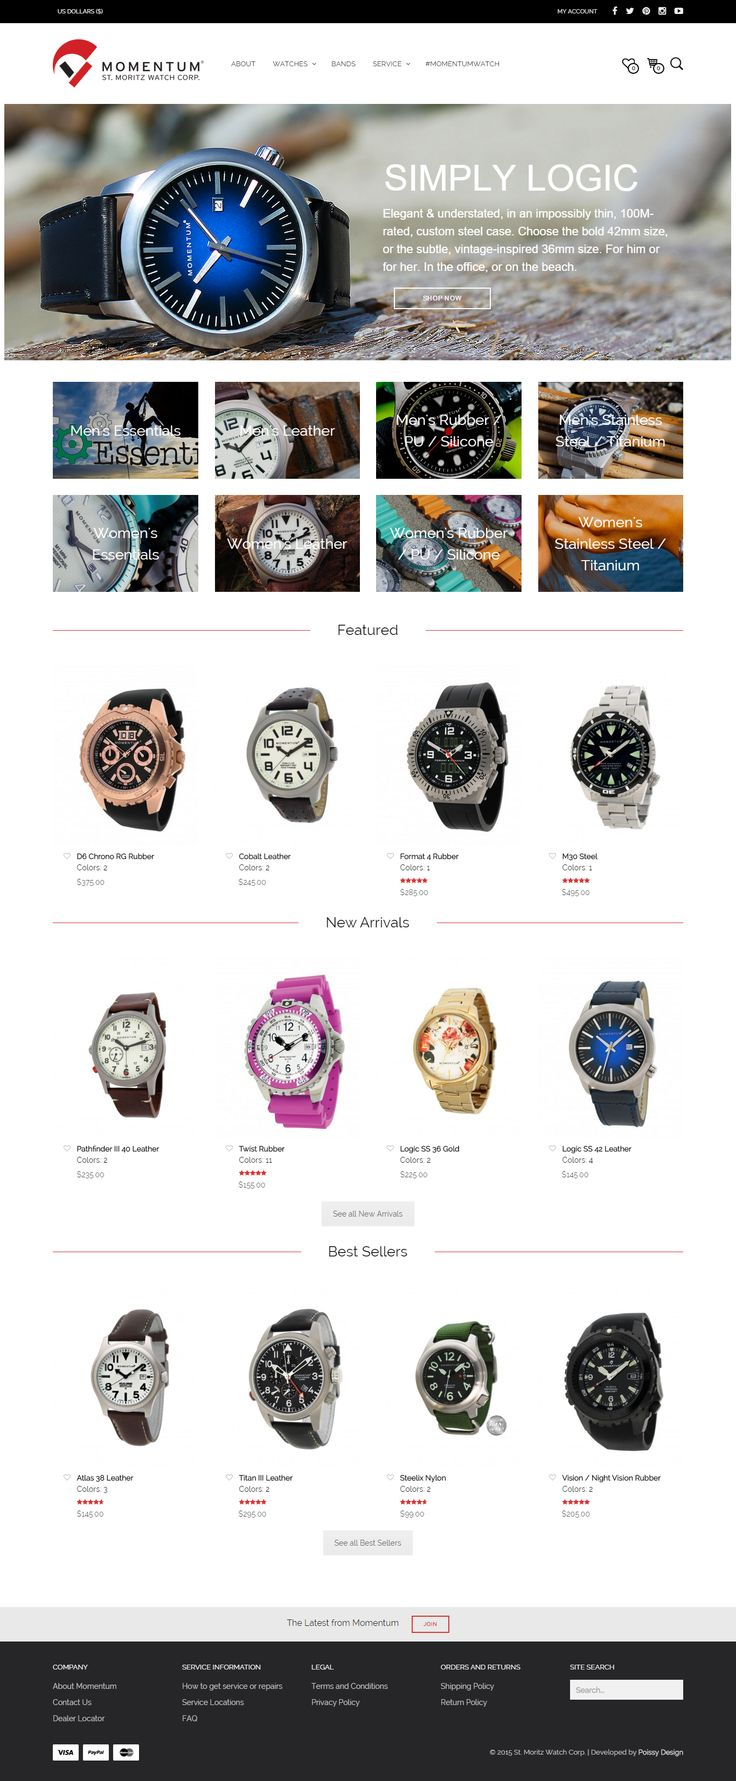 momentumwatch.com, built using Mr Tailor http://themeforest.net/item/mr-tailor-responsive-woocommerce-theme/7292110?&utm_source=pinterest.com&utm_medium=social&utm_content=momentum&utm_campaign=showcase #watches #bestsites #wordpress #design #ecommerce